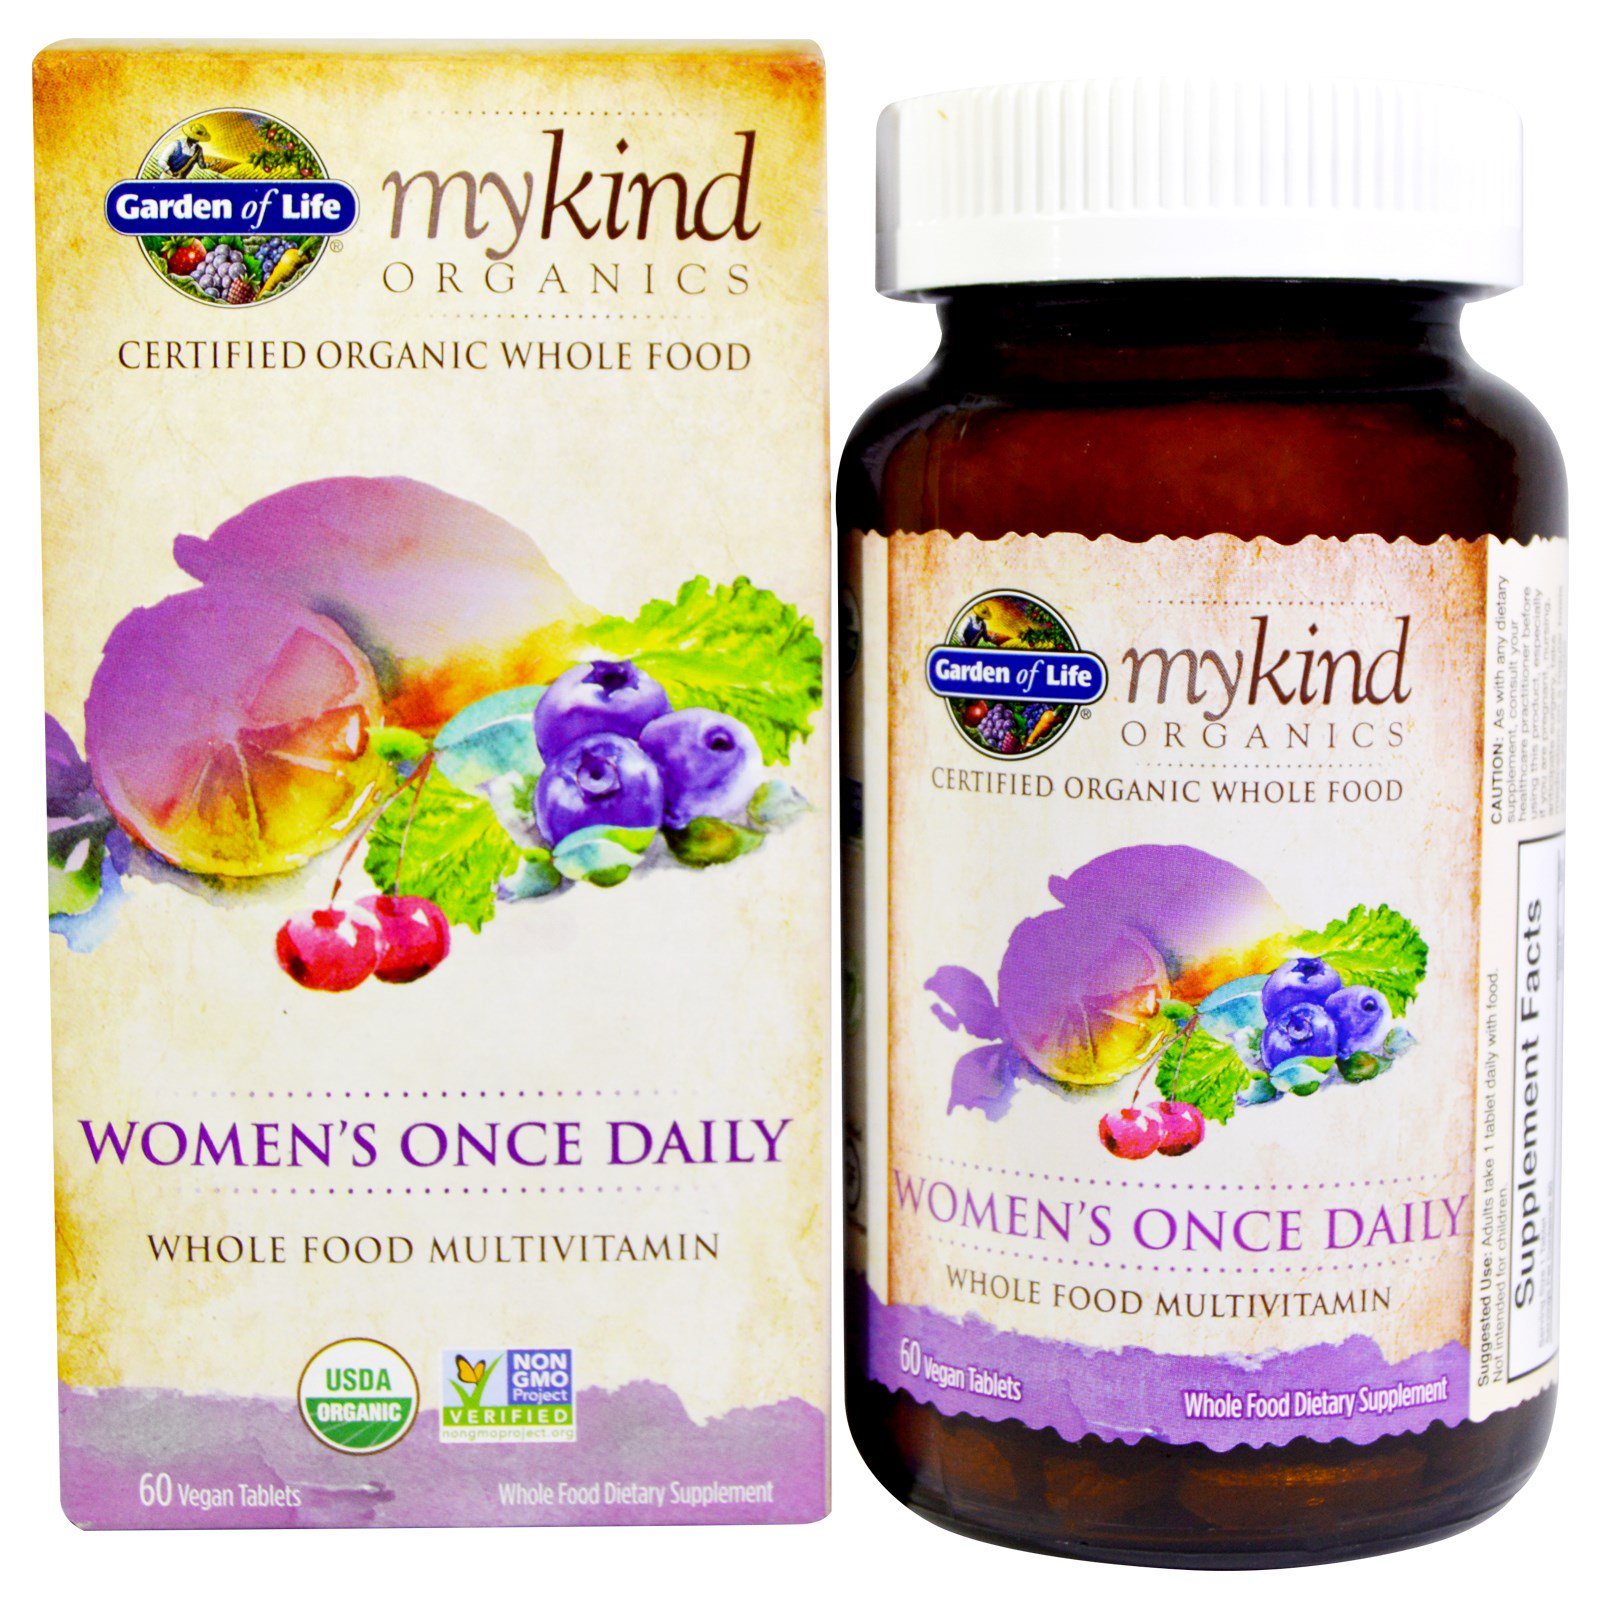 s product reviews organics mykind mens once of multivitamin men daily life garden